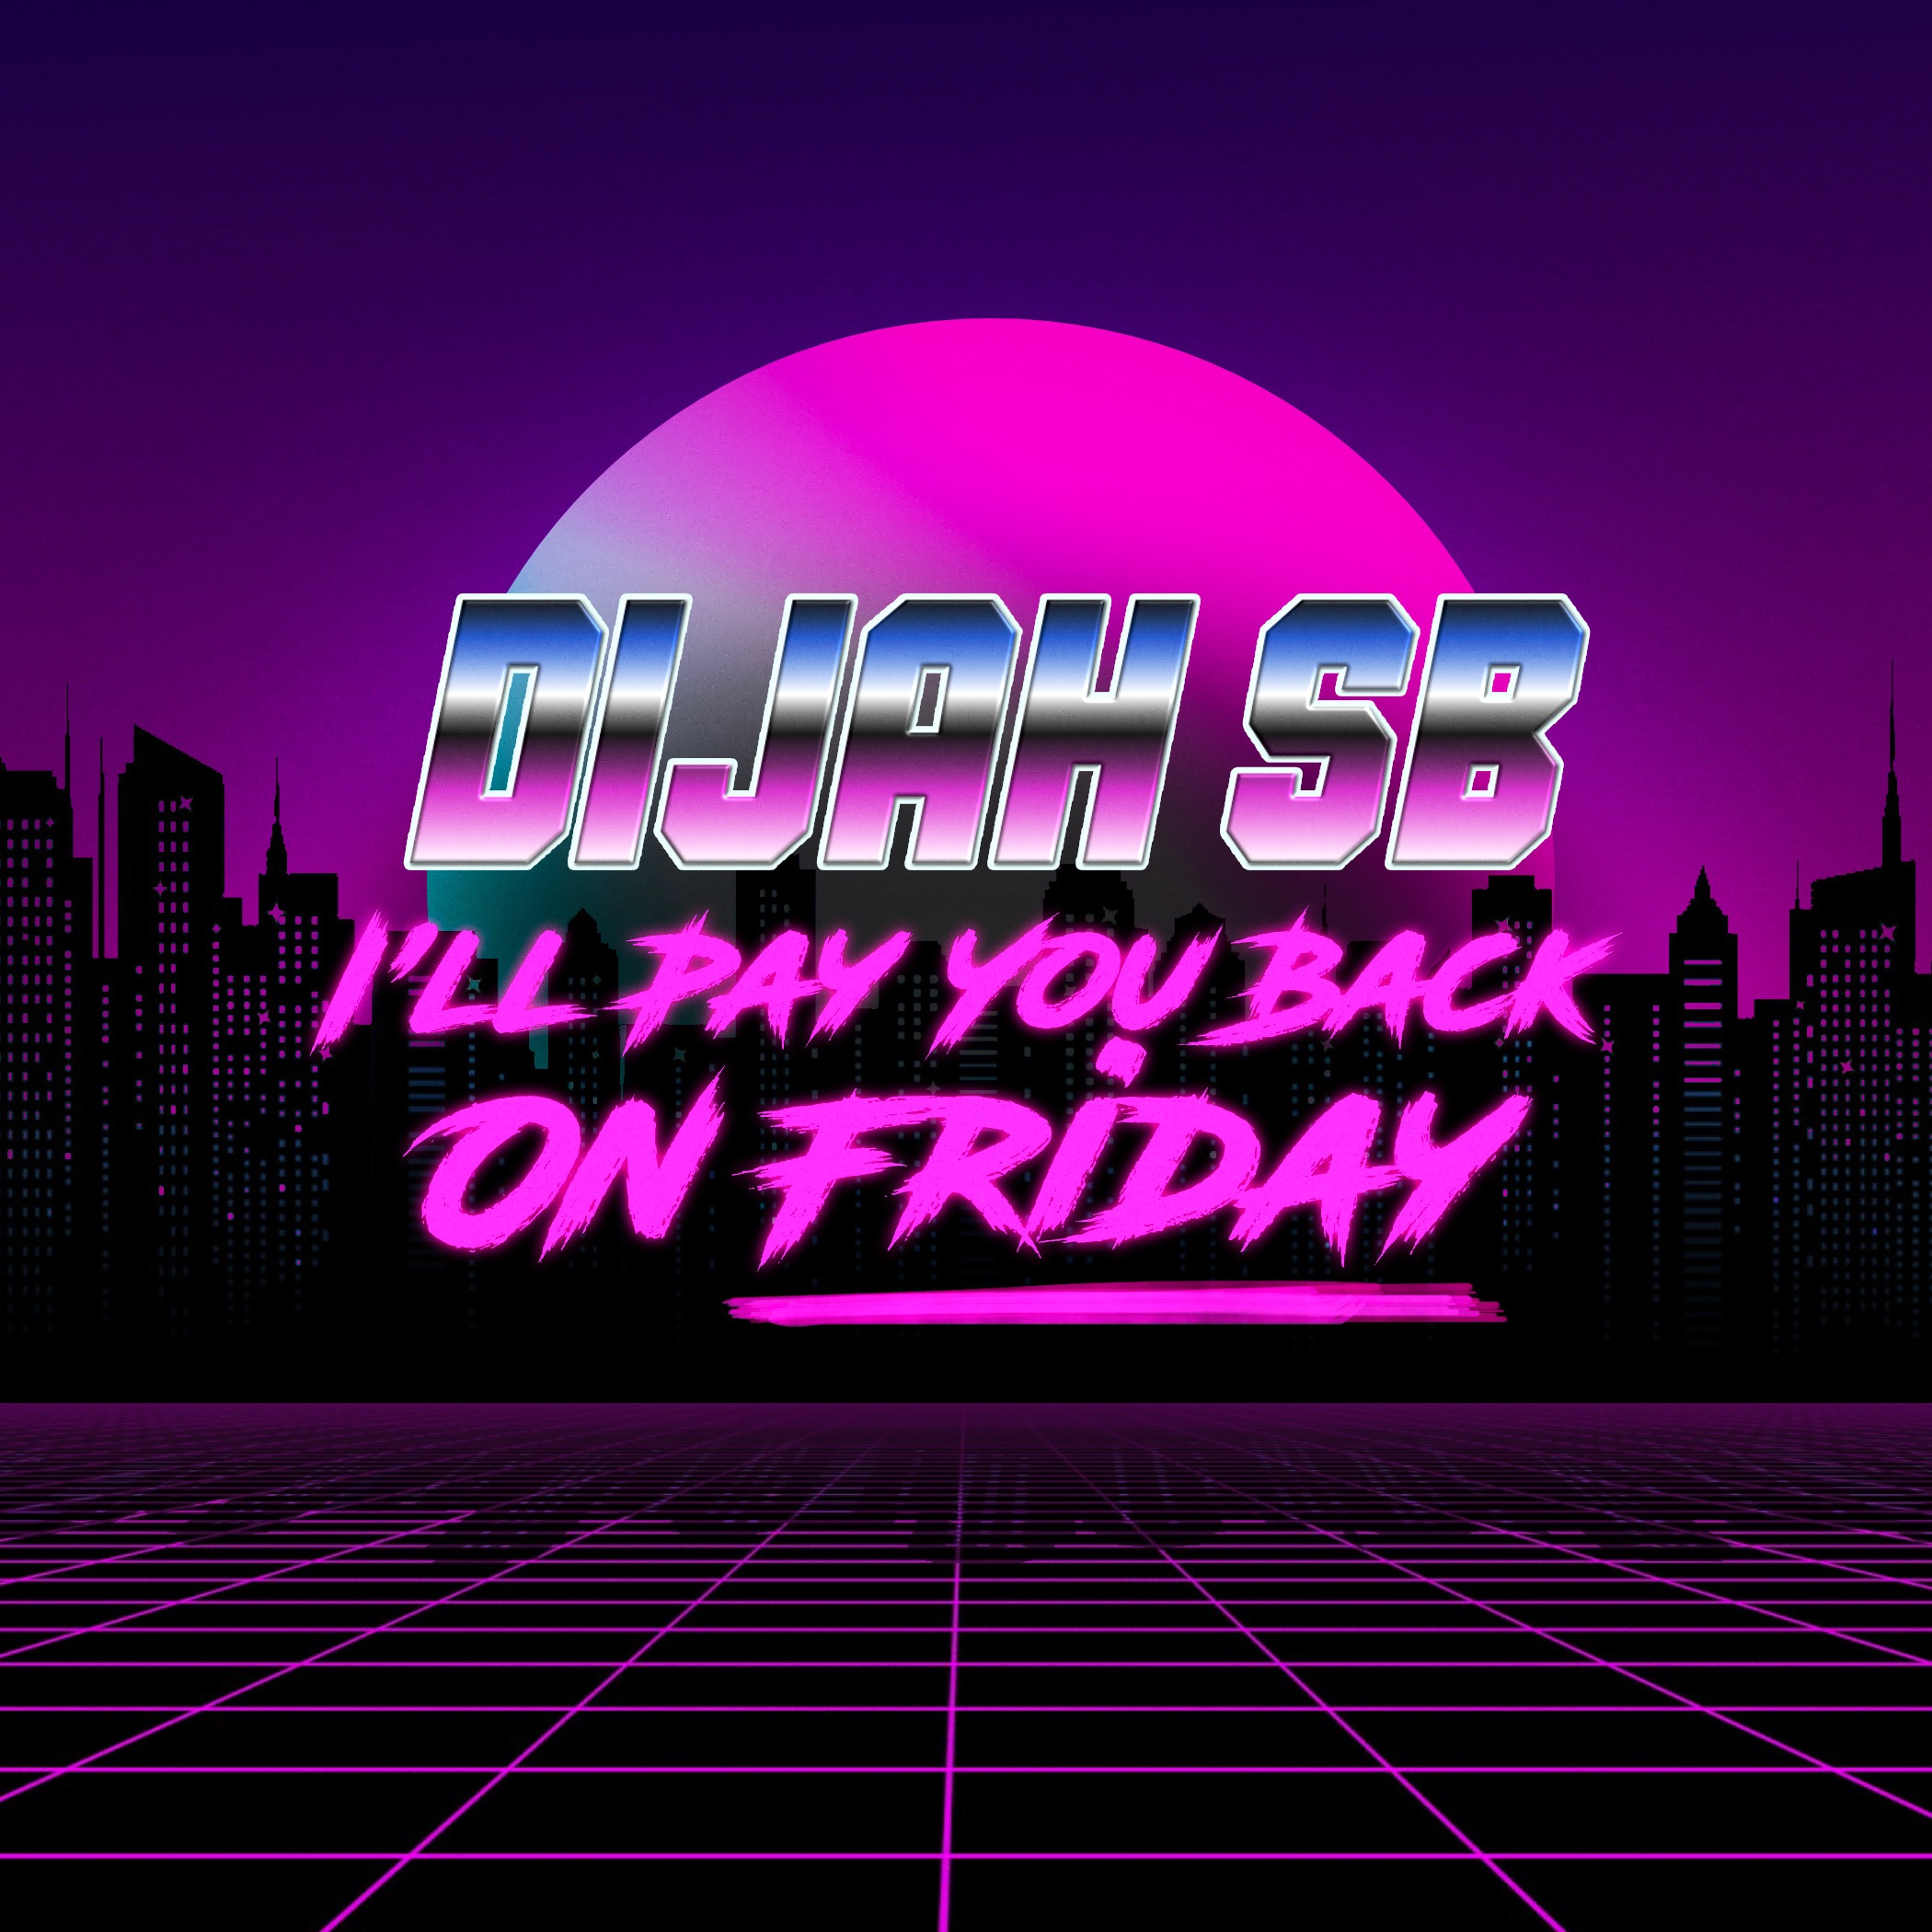 I'LL PAY YOU BACK ON FRIDAY